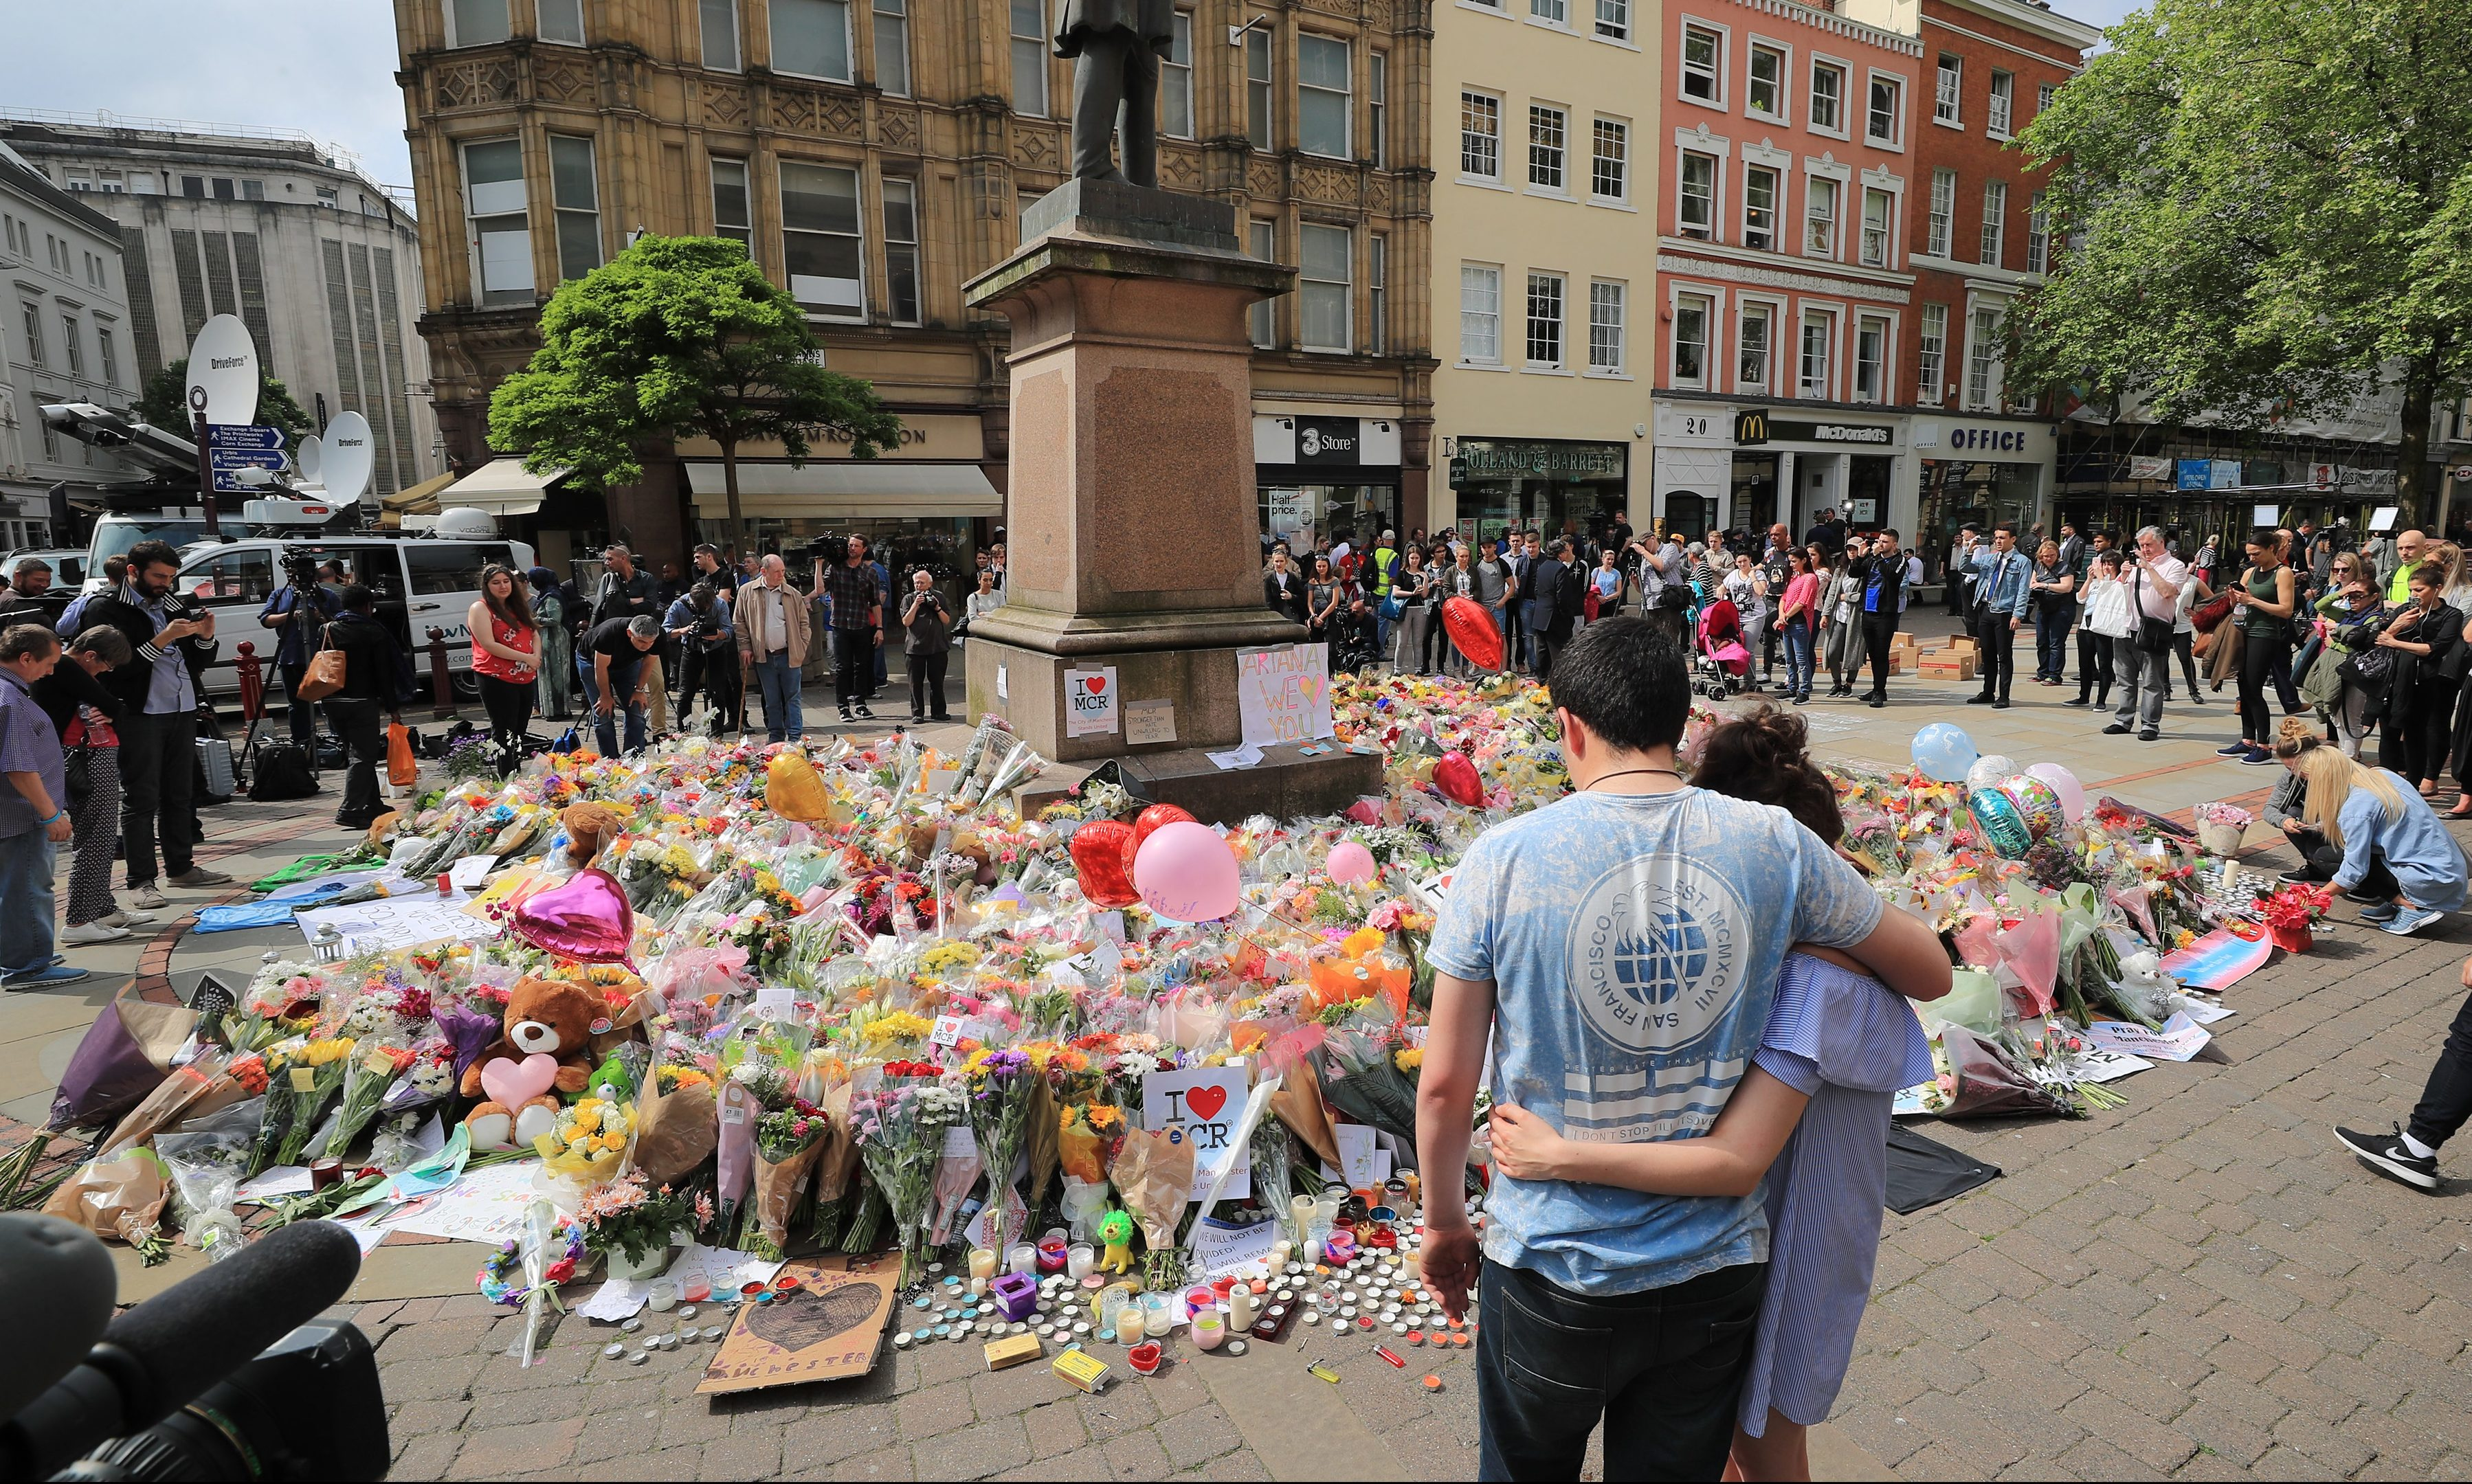 People look at flowers in St. Ann's Square, close to the Manchester Arena where a suicide bomber killed 22 people